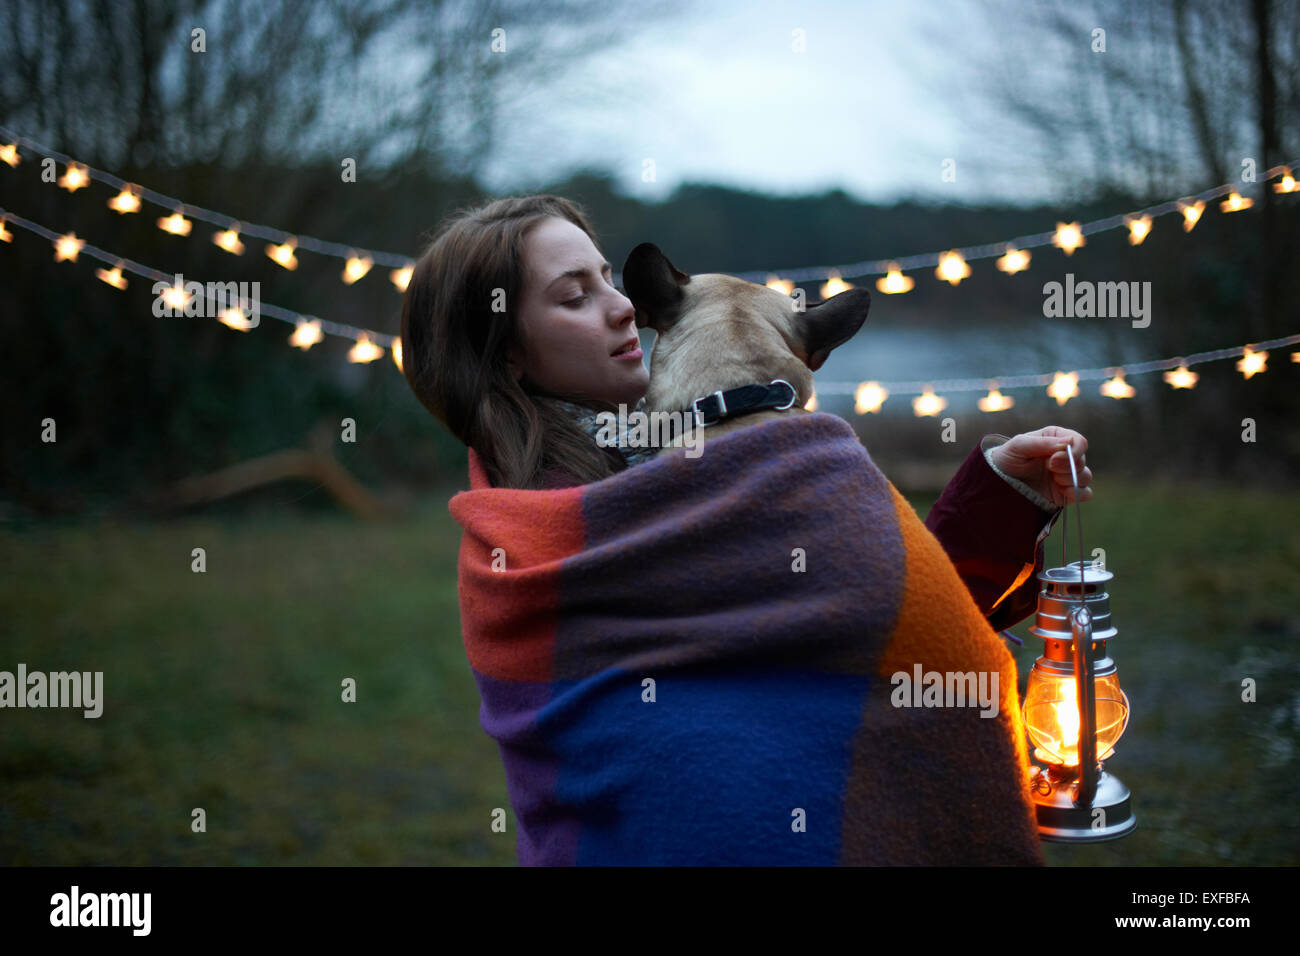 Young female camper with dog wrapped in blanket - Stock Image